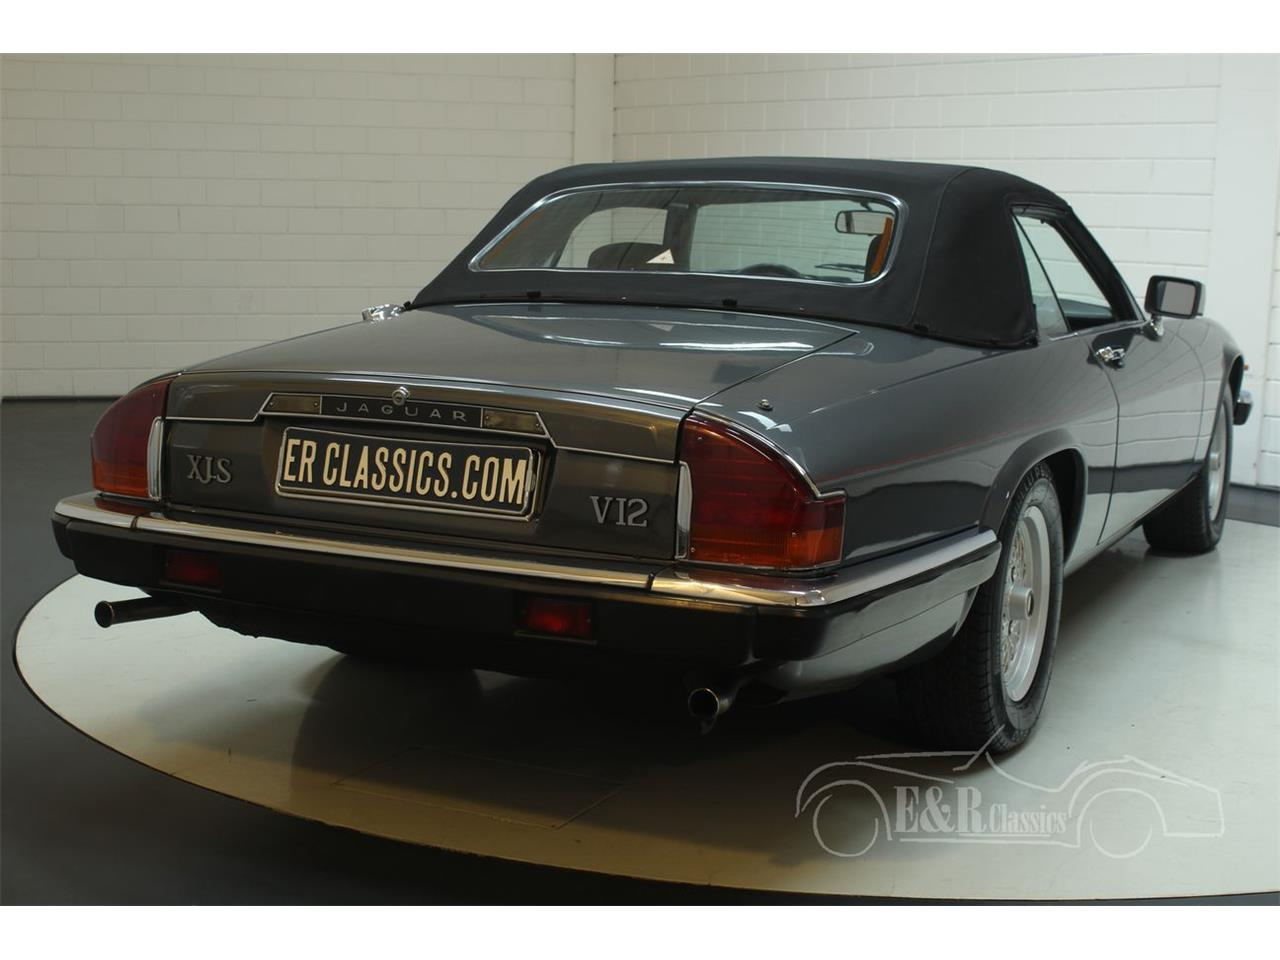 Large Picture of 1988 XJS located in Waalwijk - Keine Angabe - - $30,500.00 Offered by E & R Classics - PGSZ